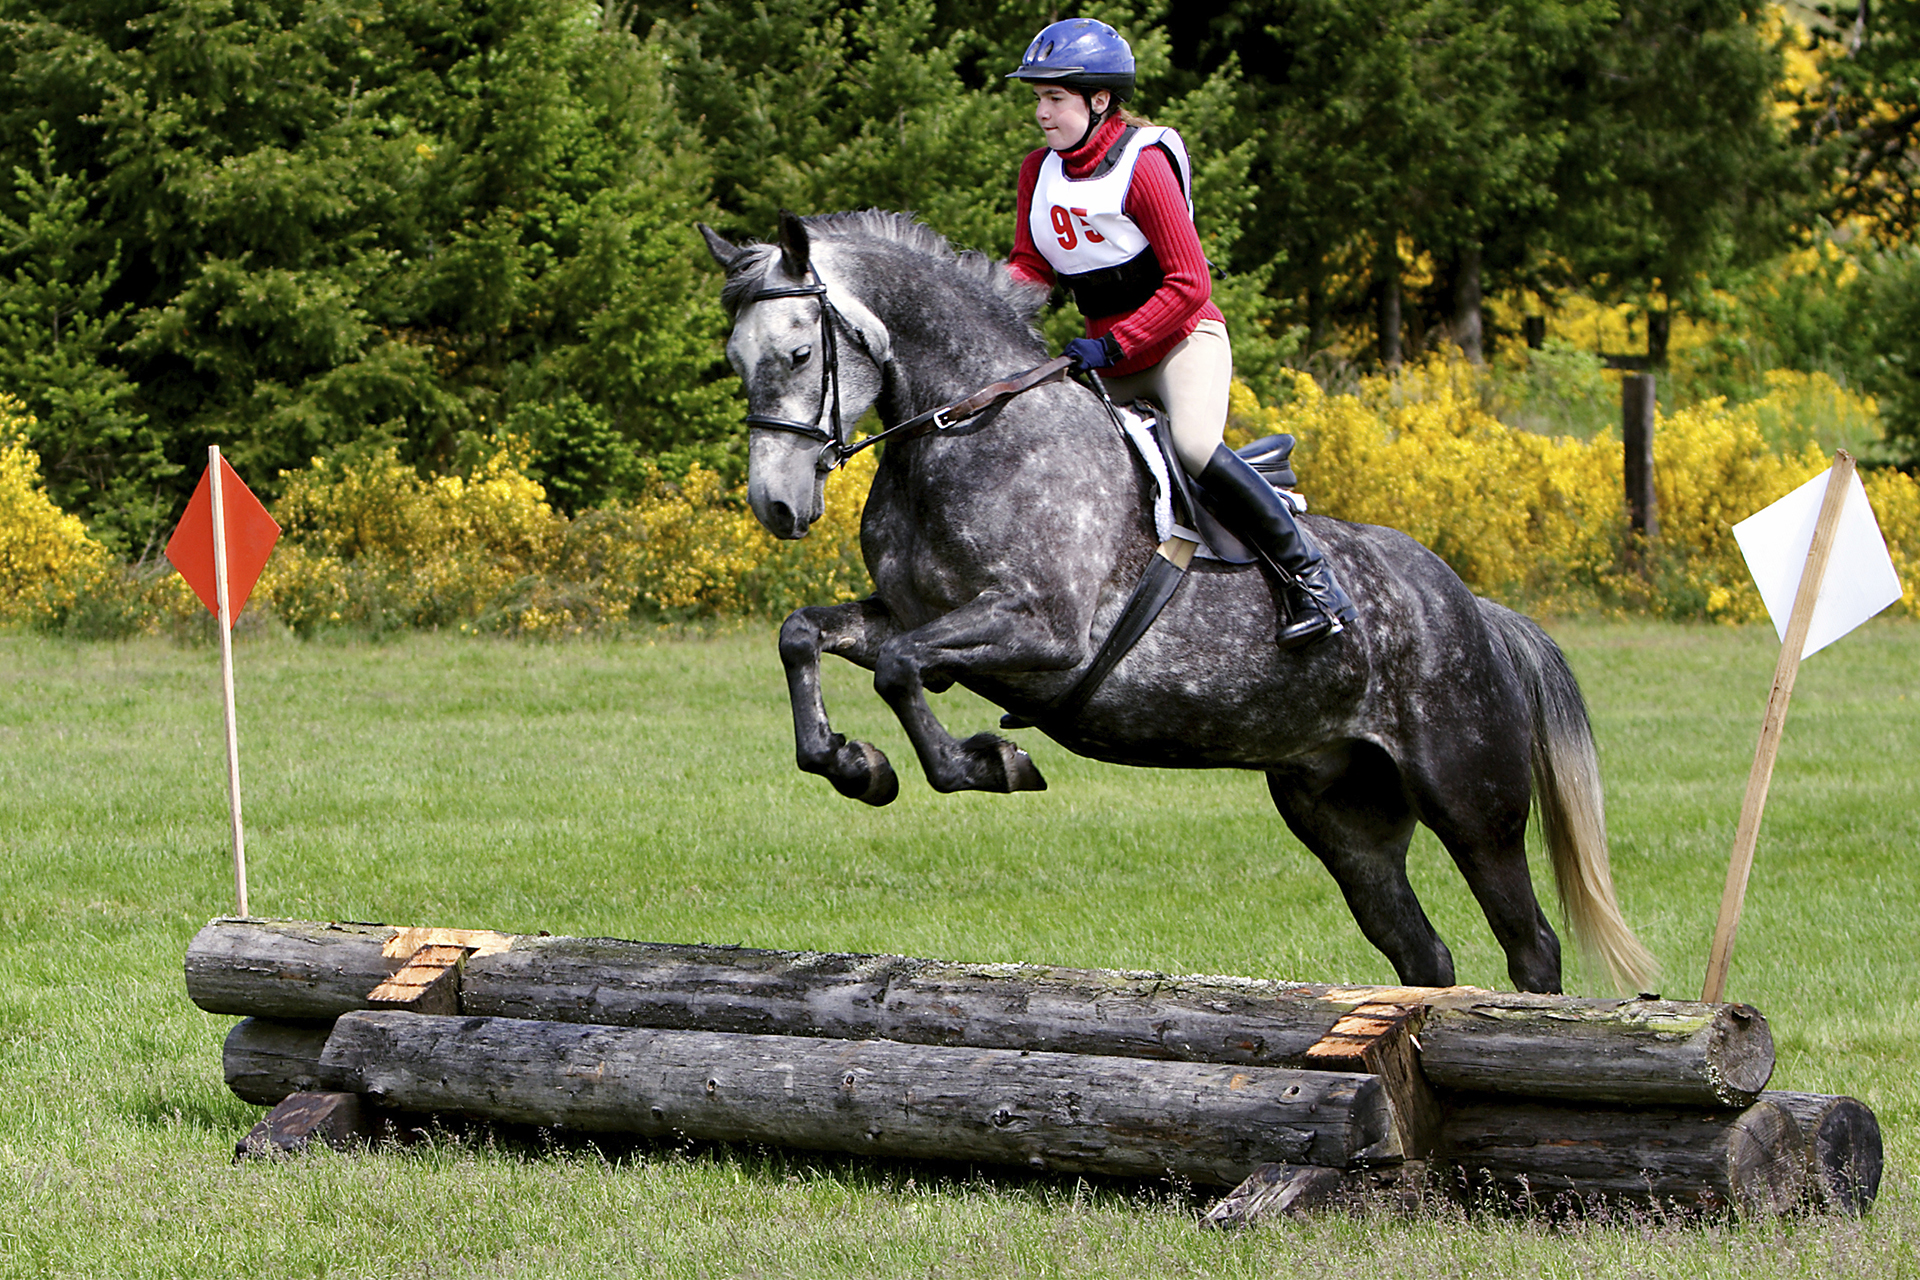 young rider jumping logs at horse trial event